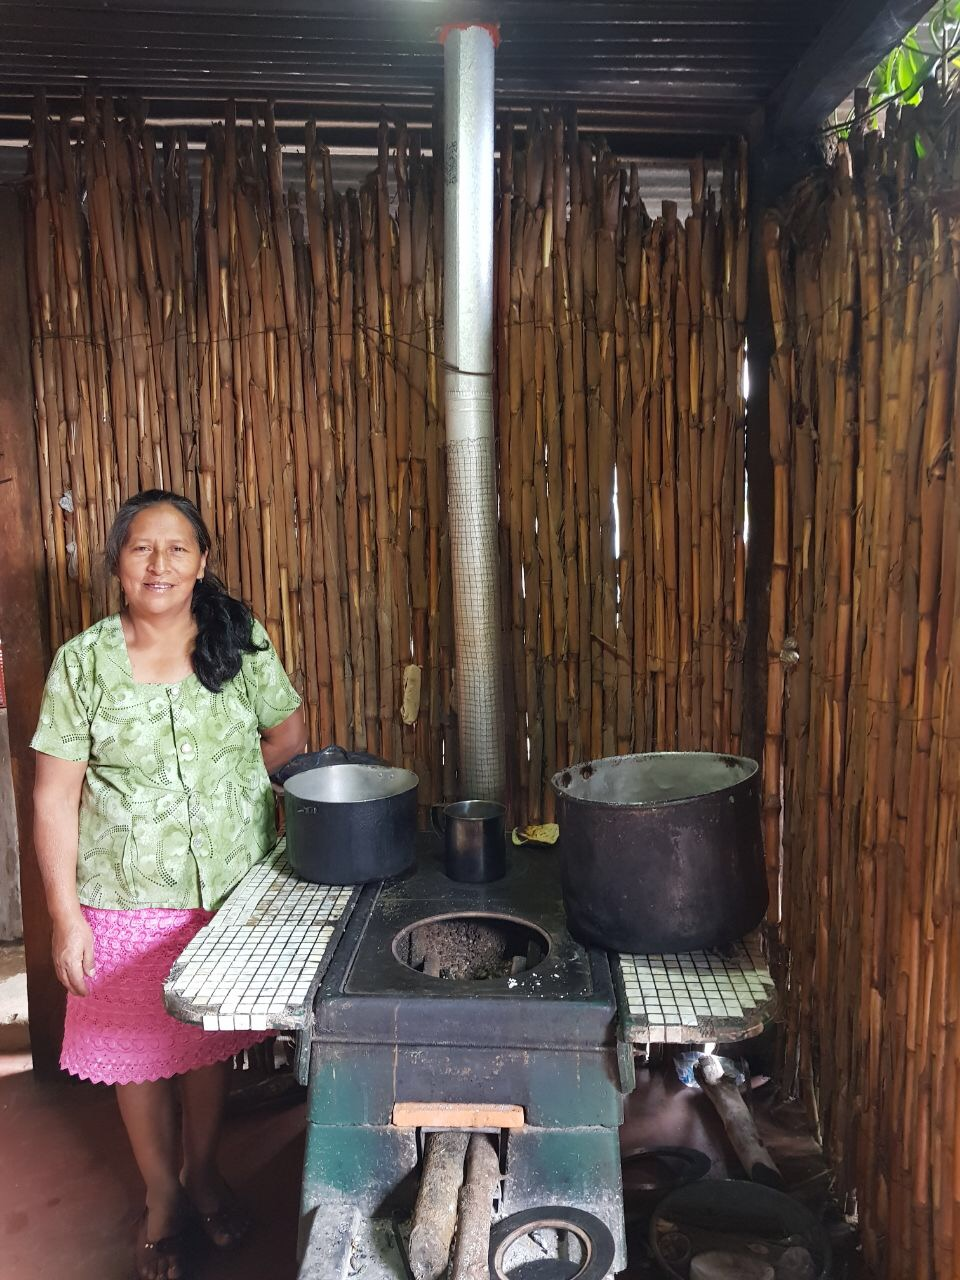 ONIL Stove user in Guatemala visited during a verification site visit in 2017.